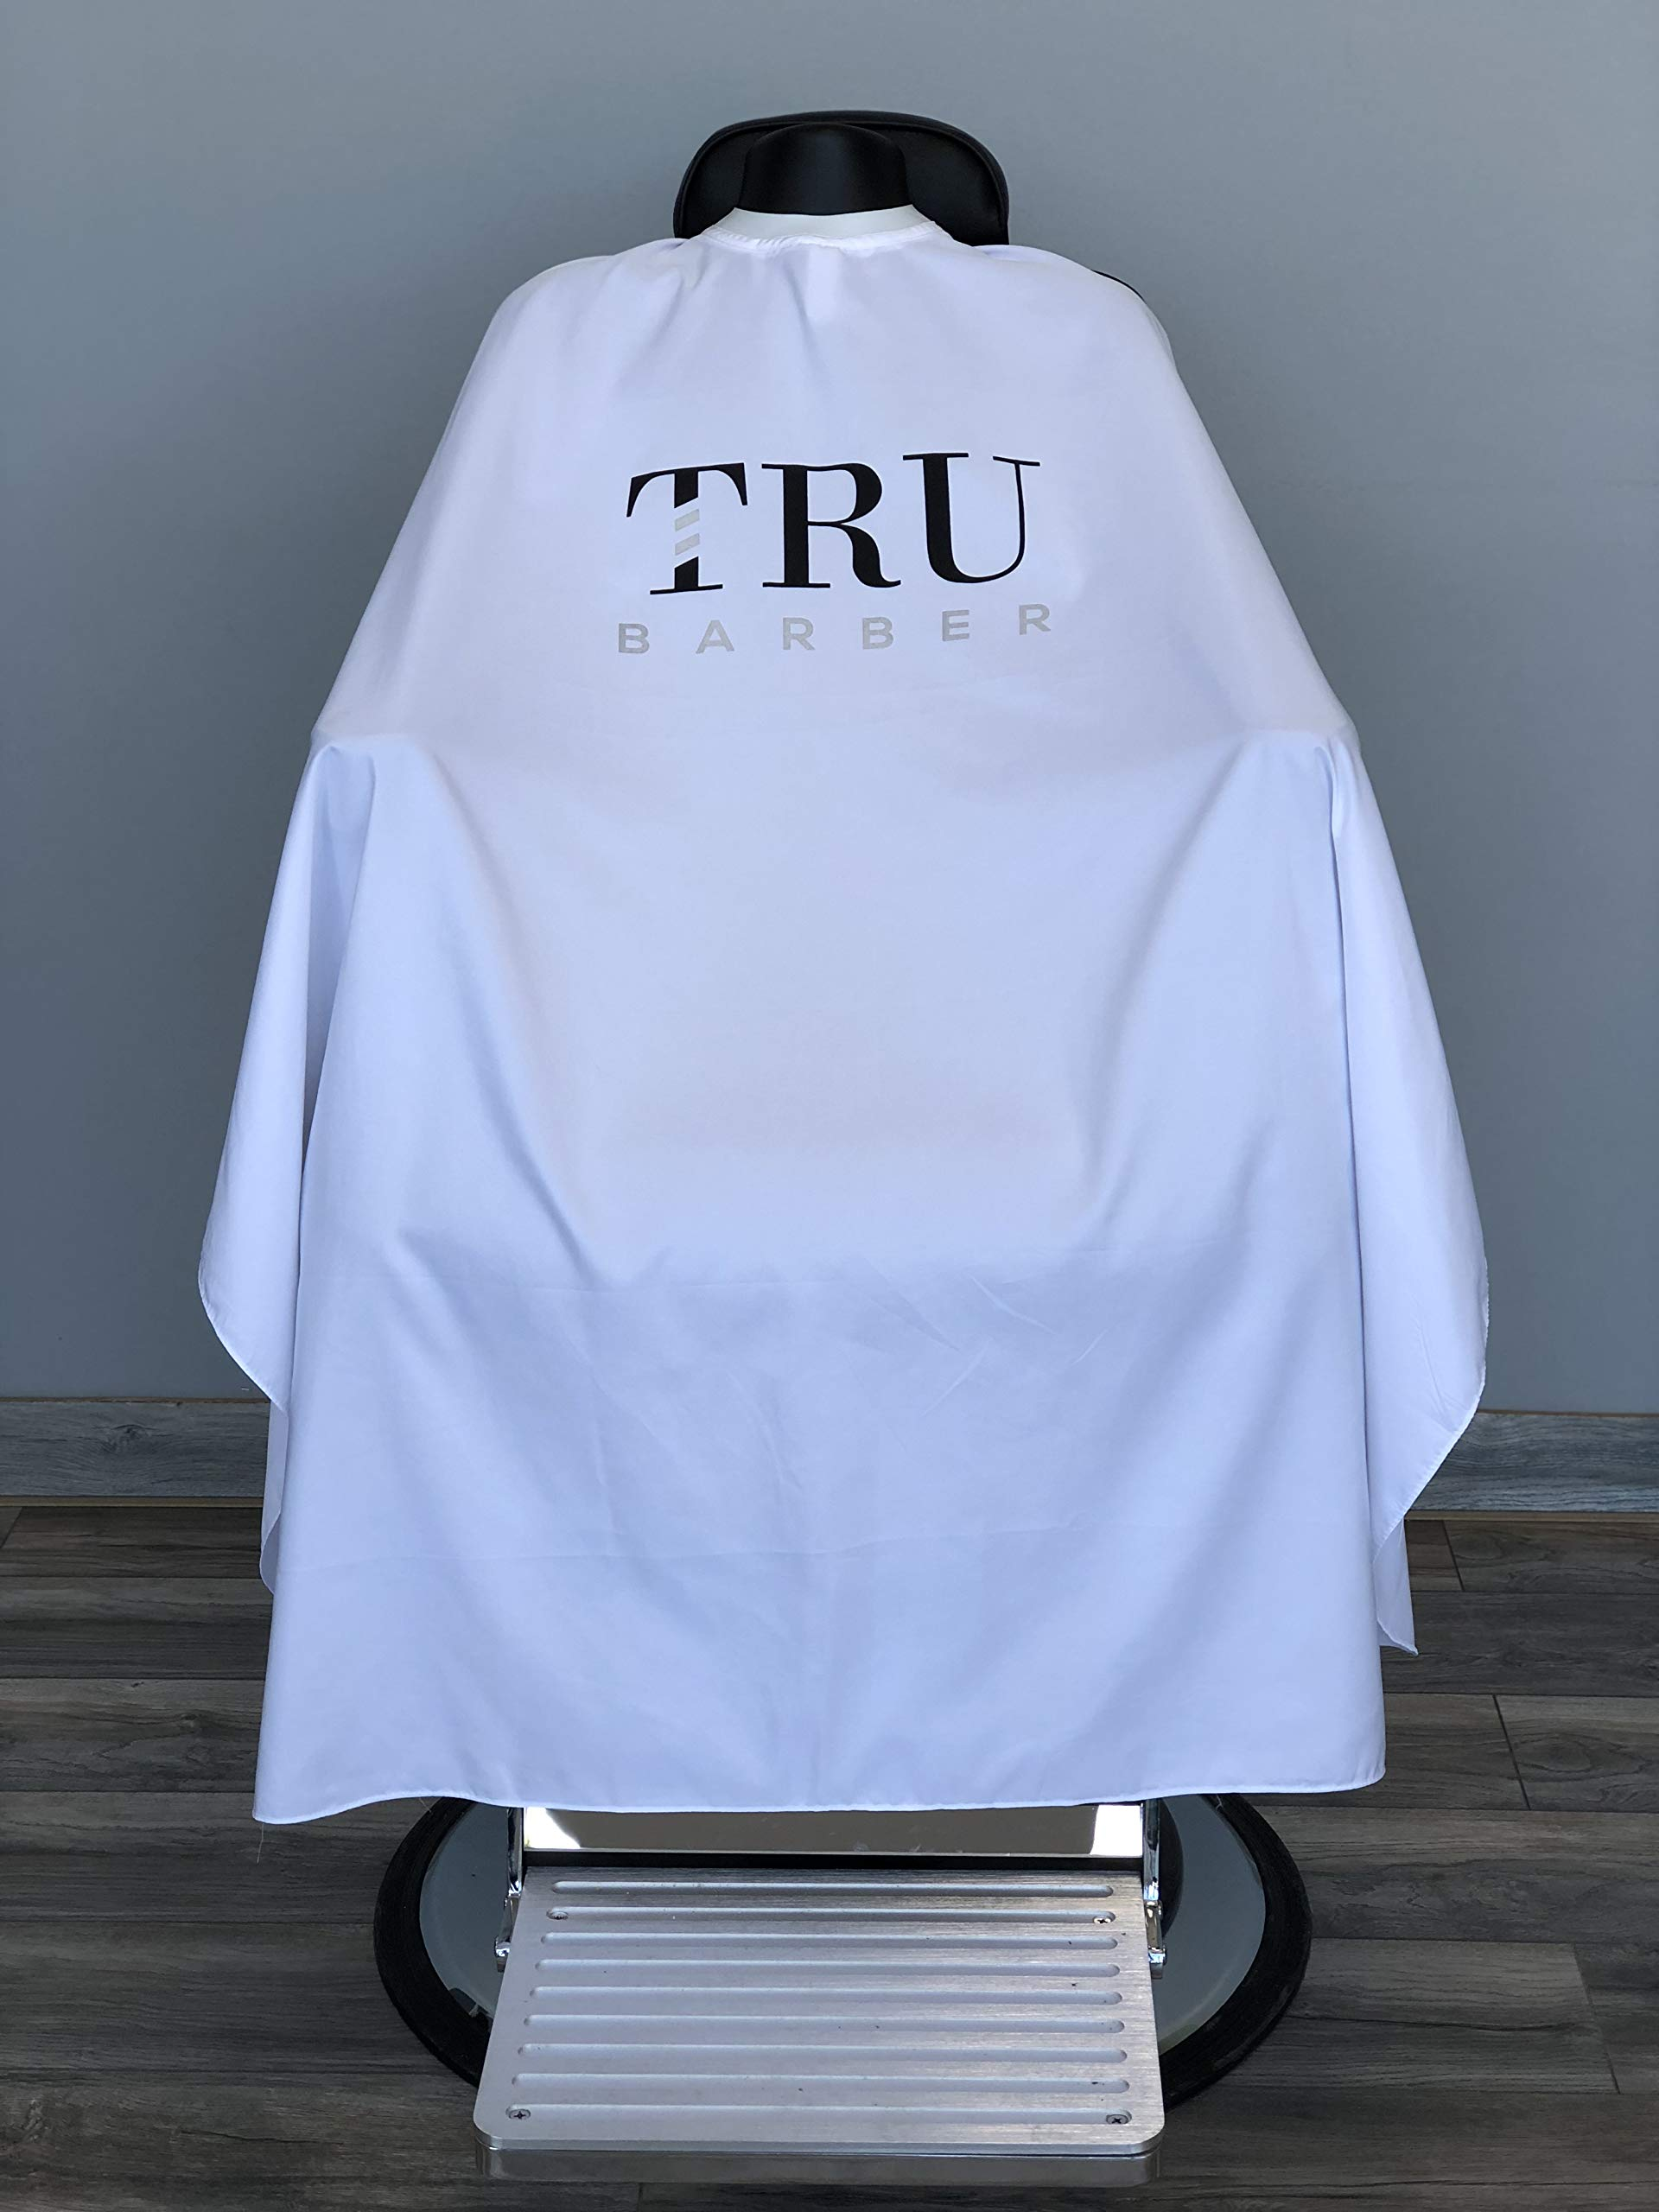 TRU BARBER Silicone neck cape, 100% Polyester, light weight cape and Waterproof, Professional Salon Cape with Snap Closure Hair Salon Cutting Cape, Barber Cape, Barbershop cape, 50'' x 58'' (White) by TRU BARBER